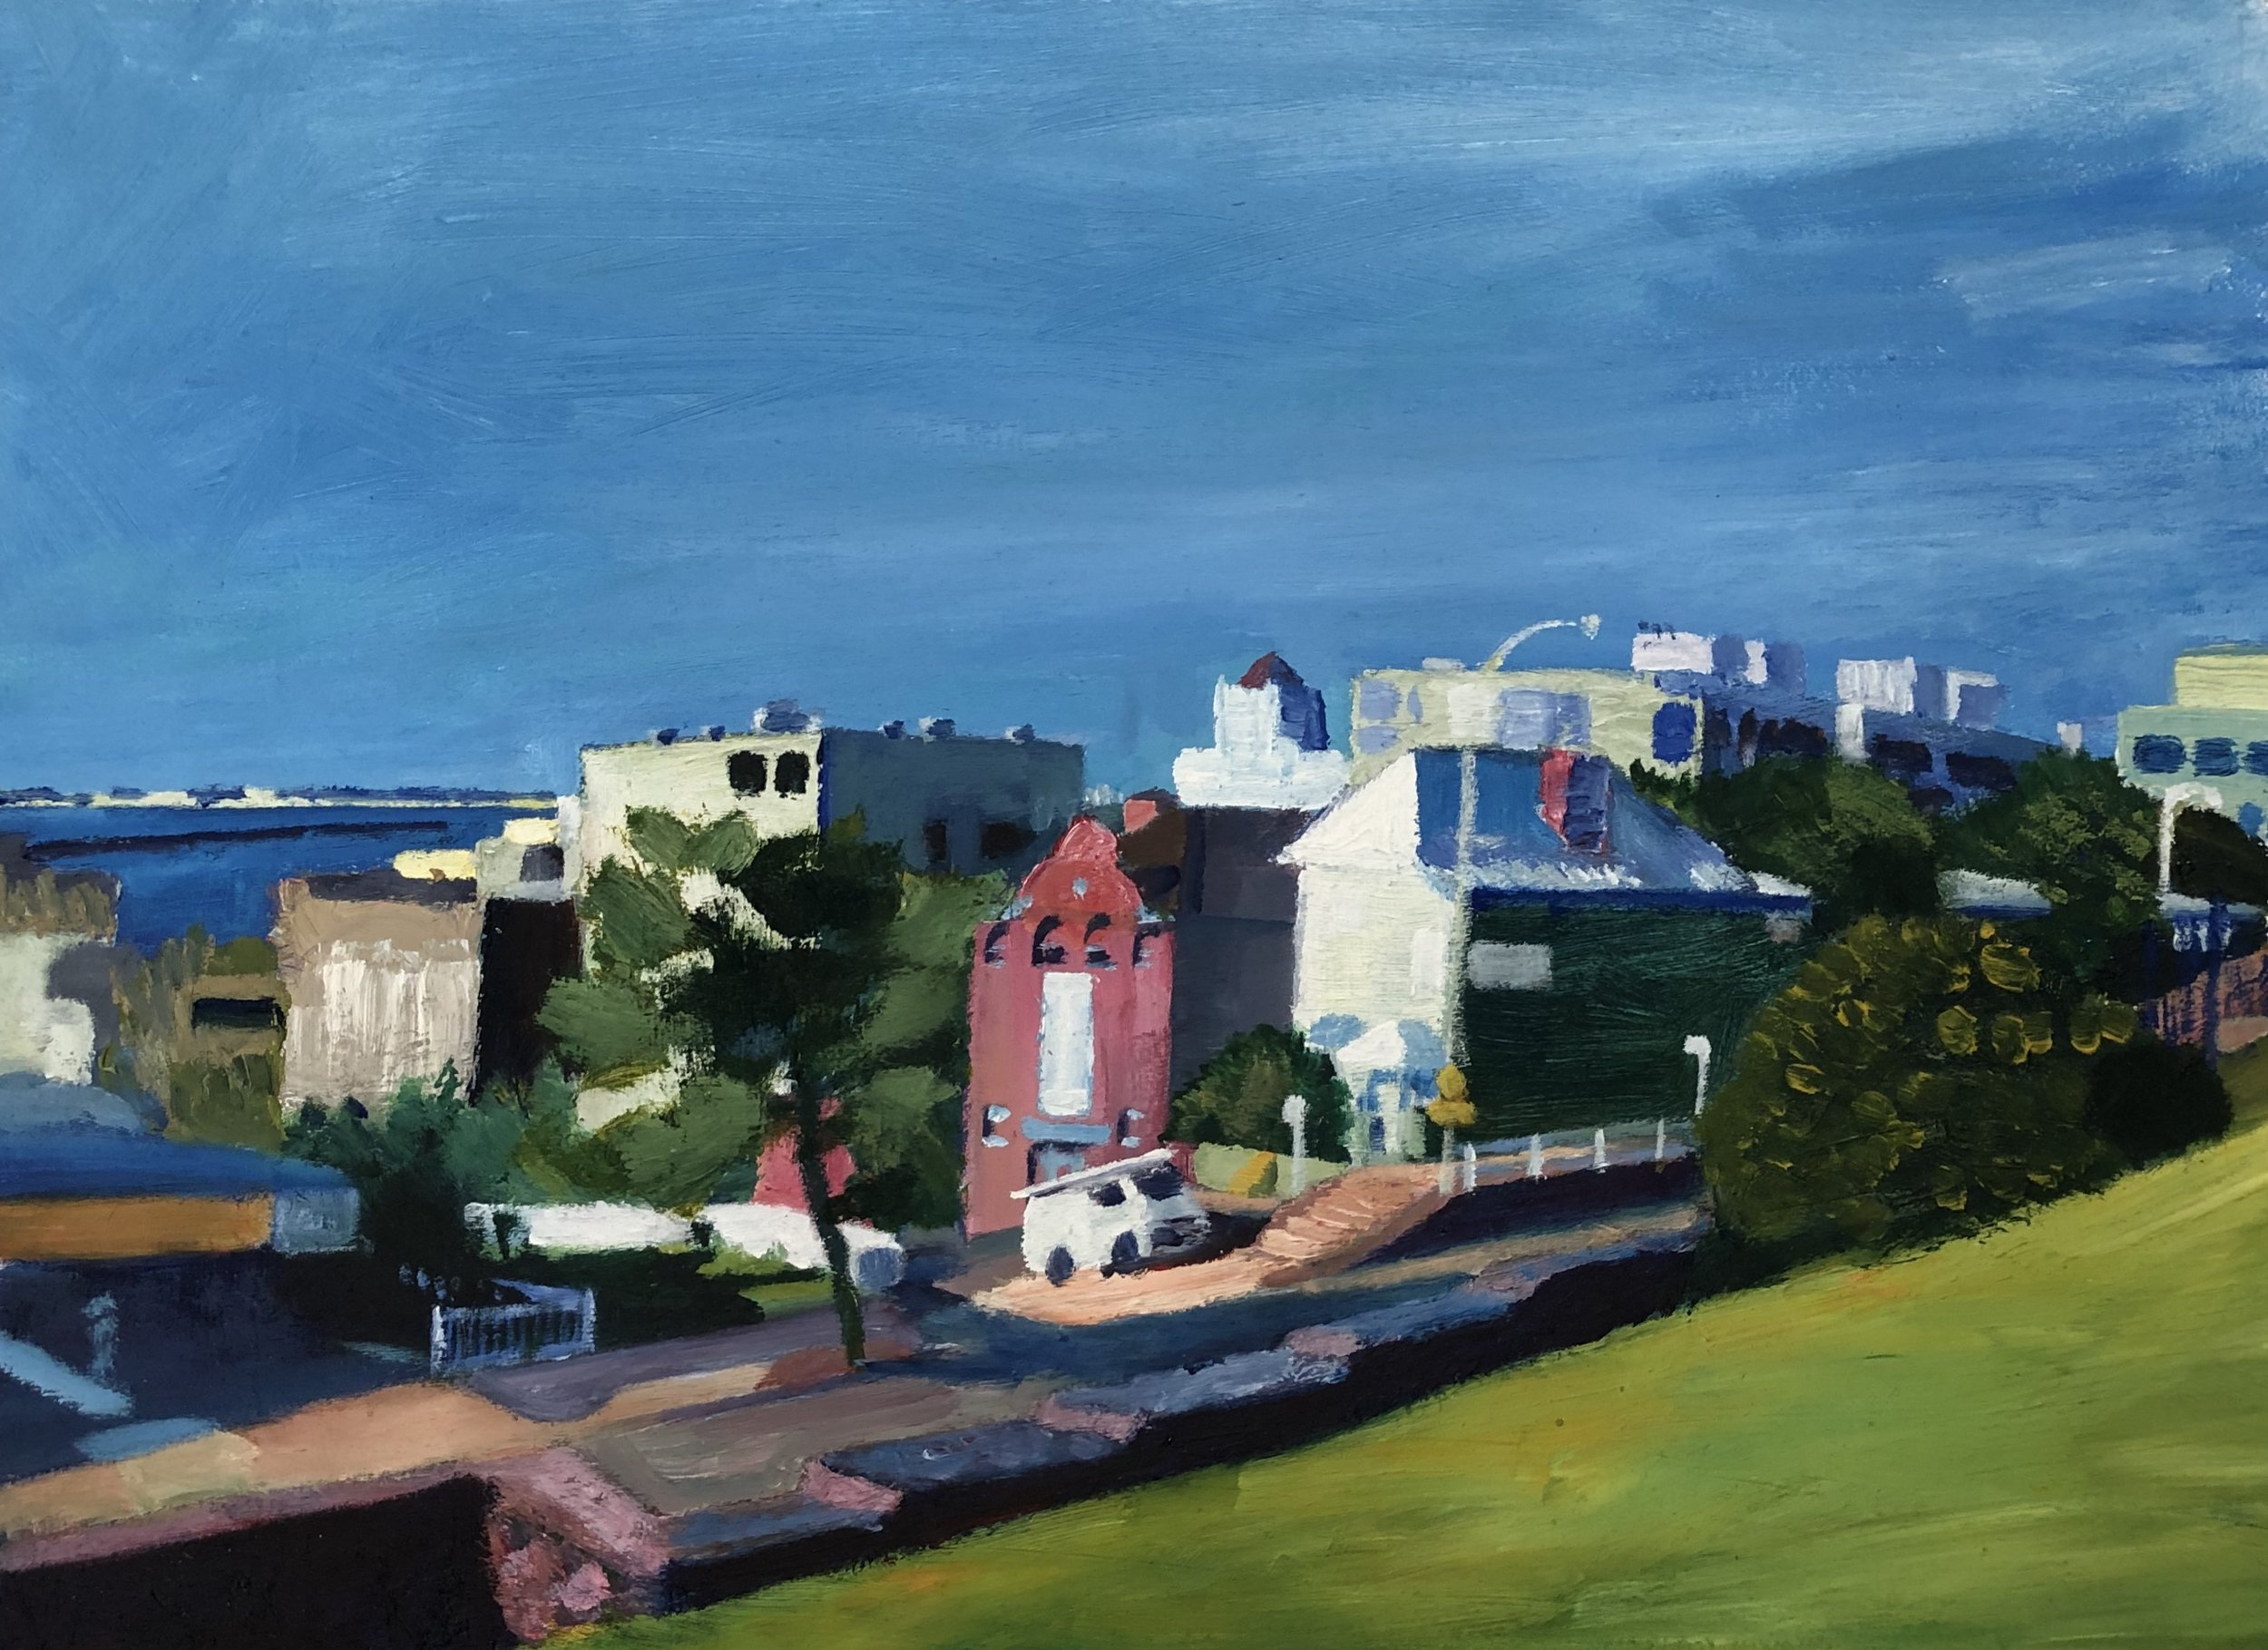 Patrick Mavety  Top of King St  2019 oil on cotton paper 43 x 53cm mounted:framed $490.00